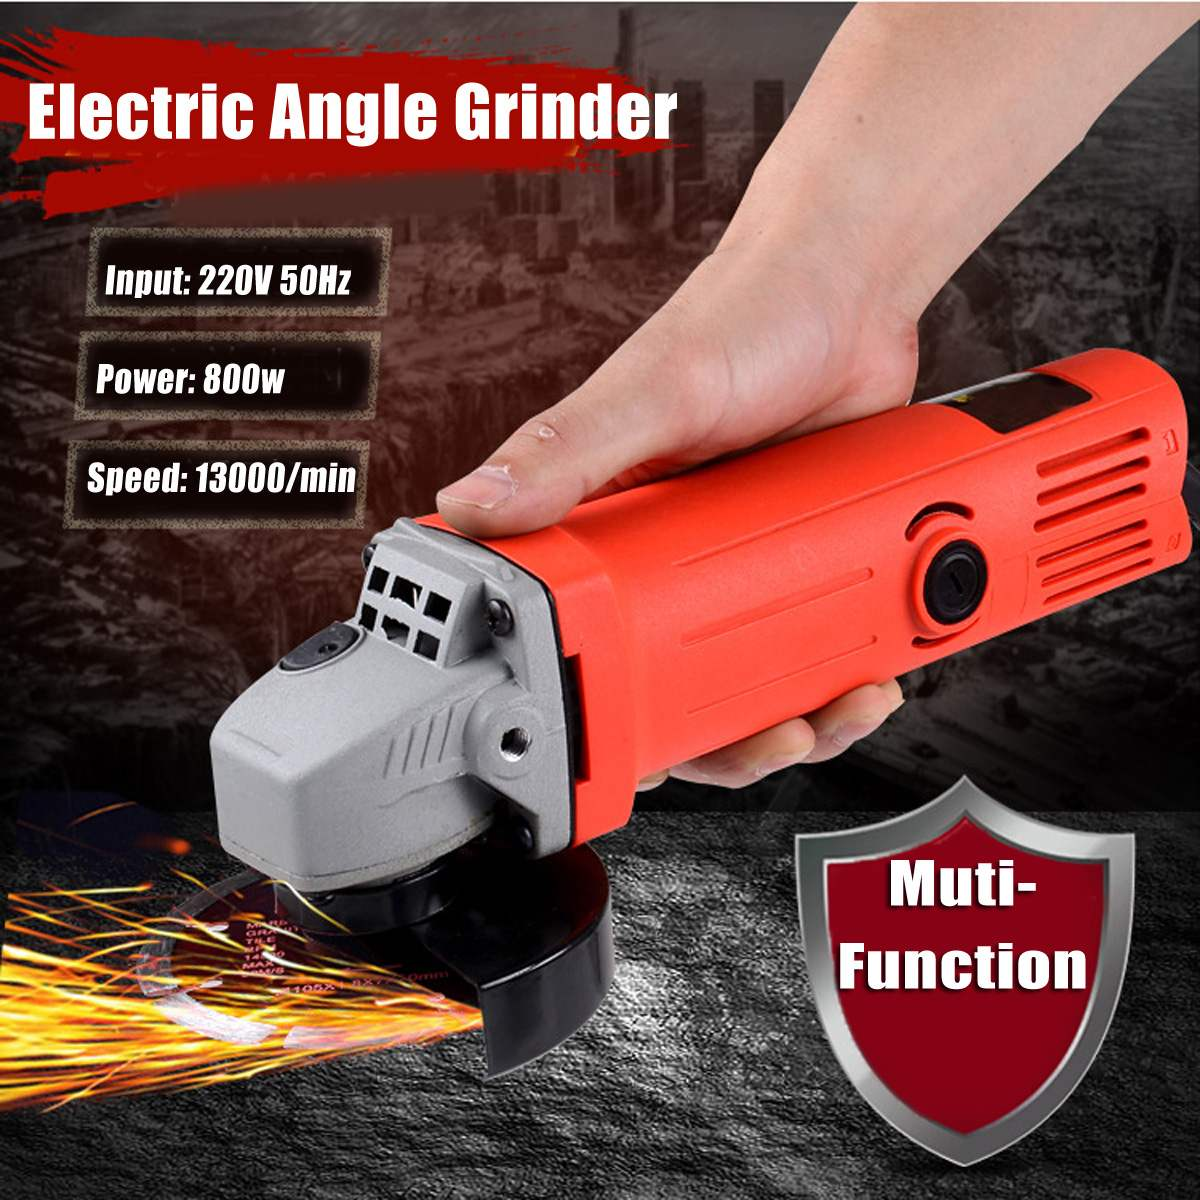 800W 220V 100mm Portable Electric Angle Grinder Muti-Function Household Polish Machine Grinding Cutting Polishing Machine cukyi household electric multi function cooker 220v stainless steel colorful stew cook steam machine 5 in 1